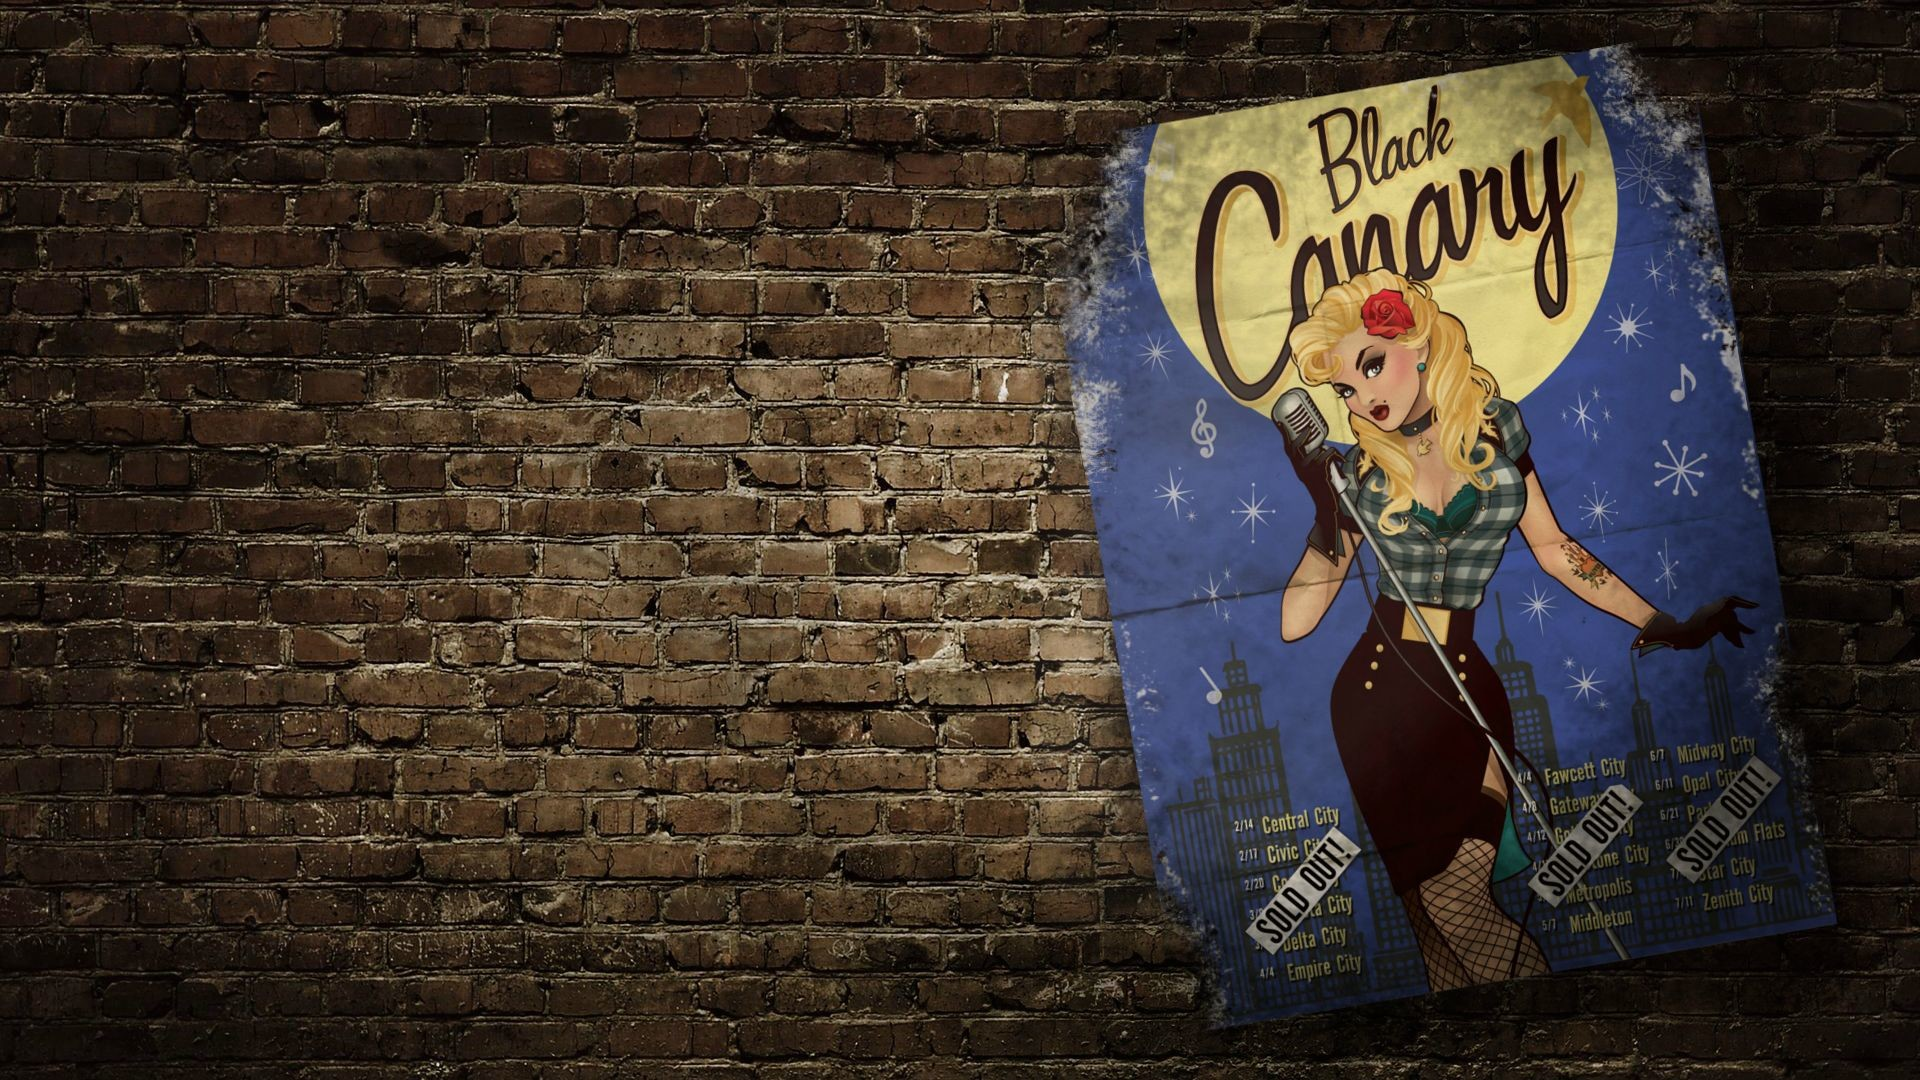 Res: 1920x1080, Black Canary